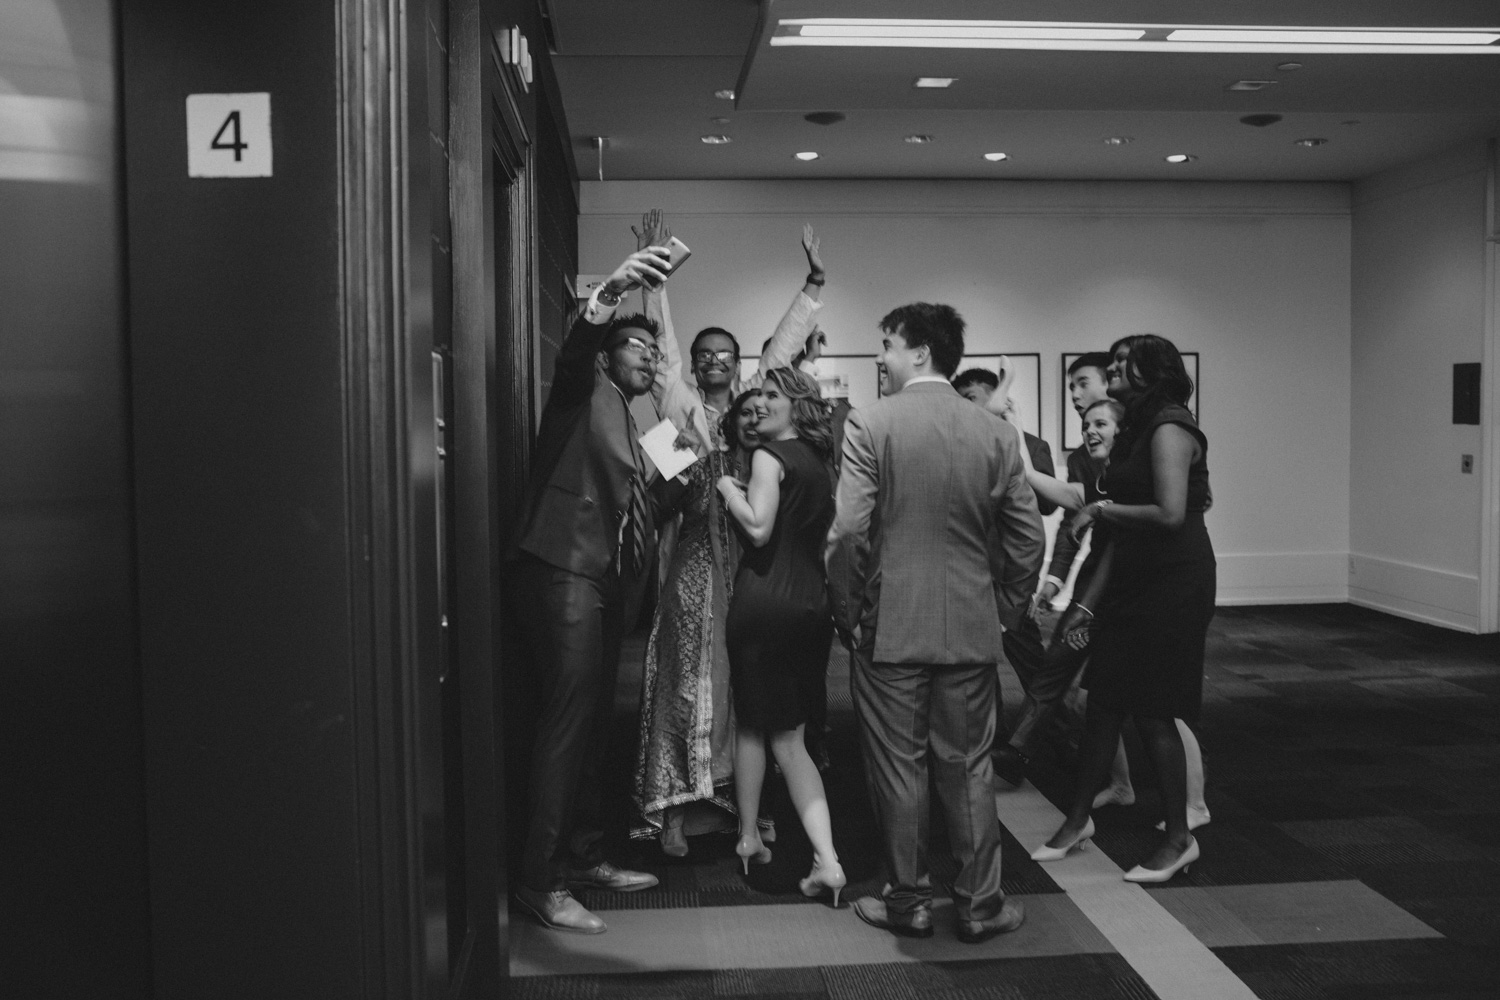 knox-college-toronto-wedding-photos-by-sam-wong-of-artanis-collective_49